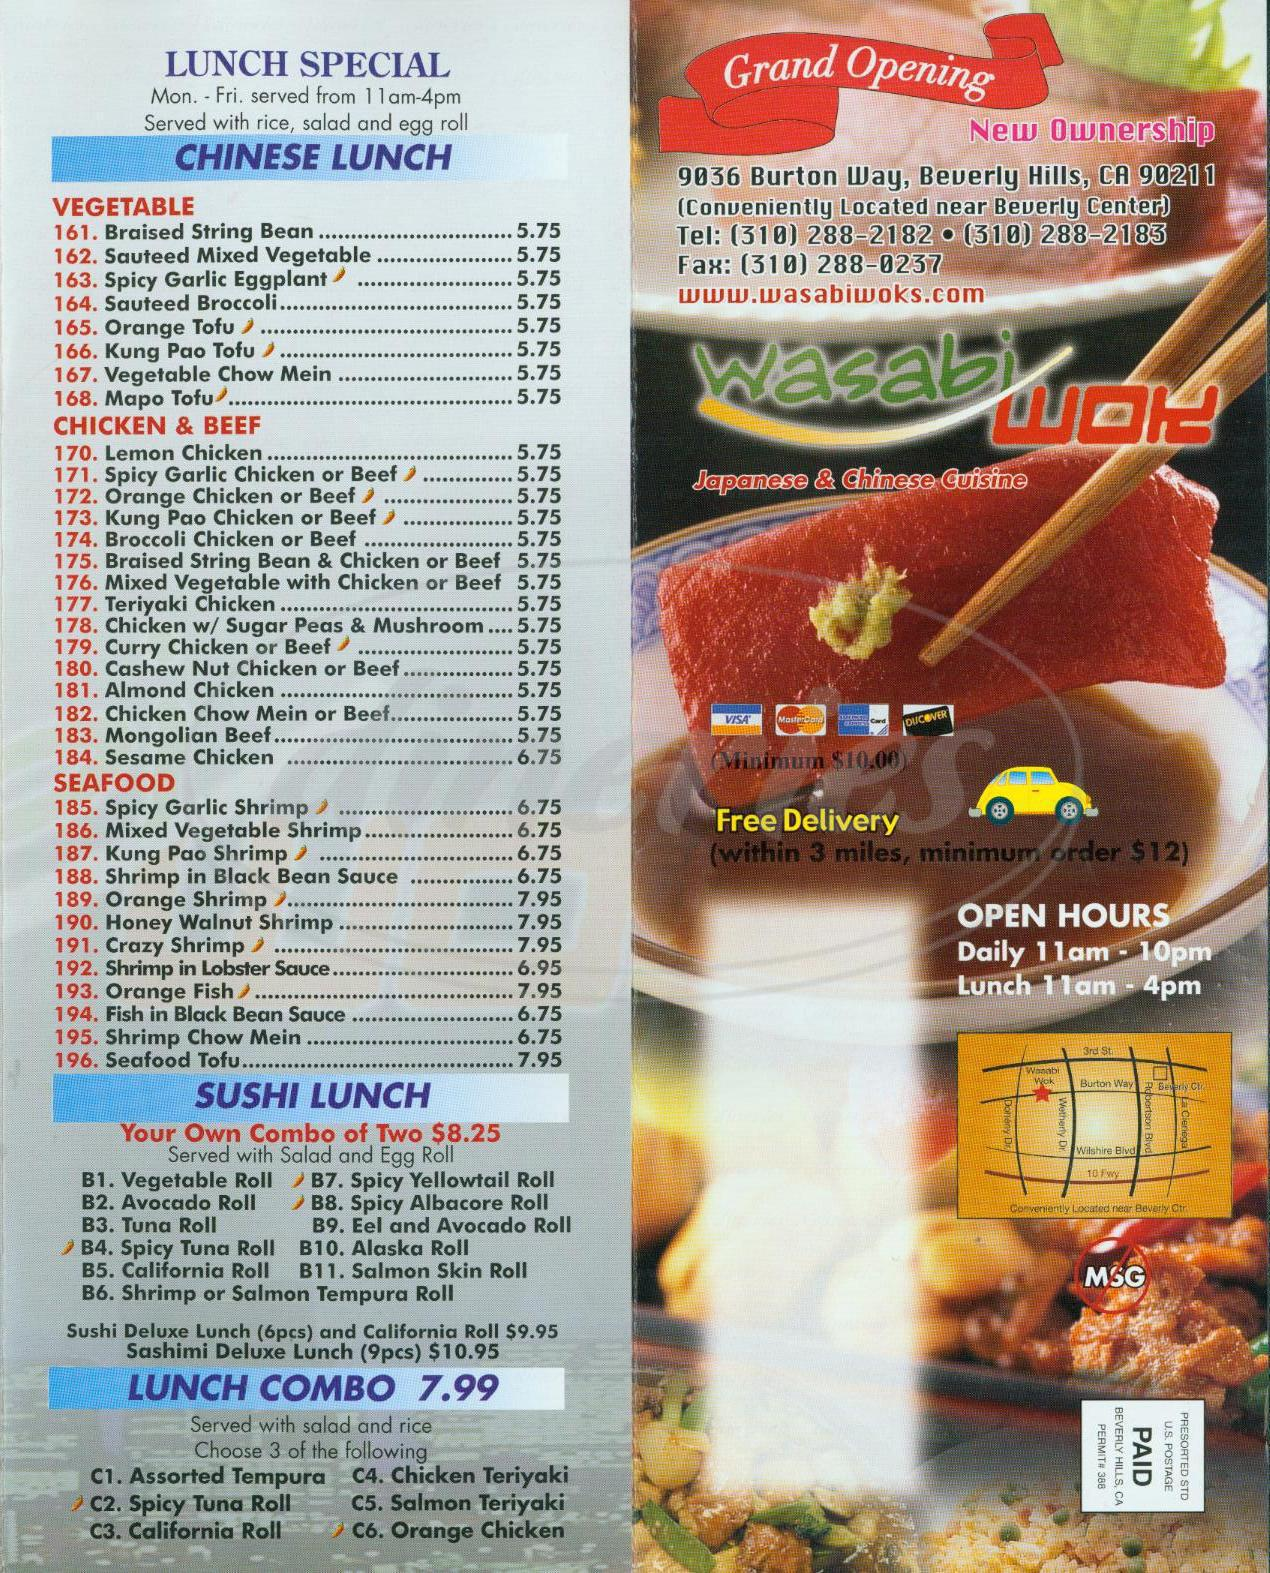 menu for Wasabi Wok